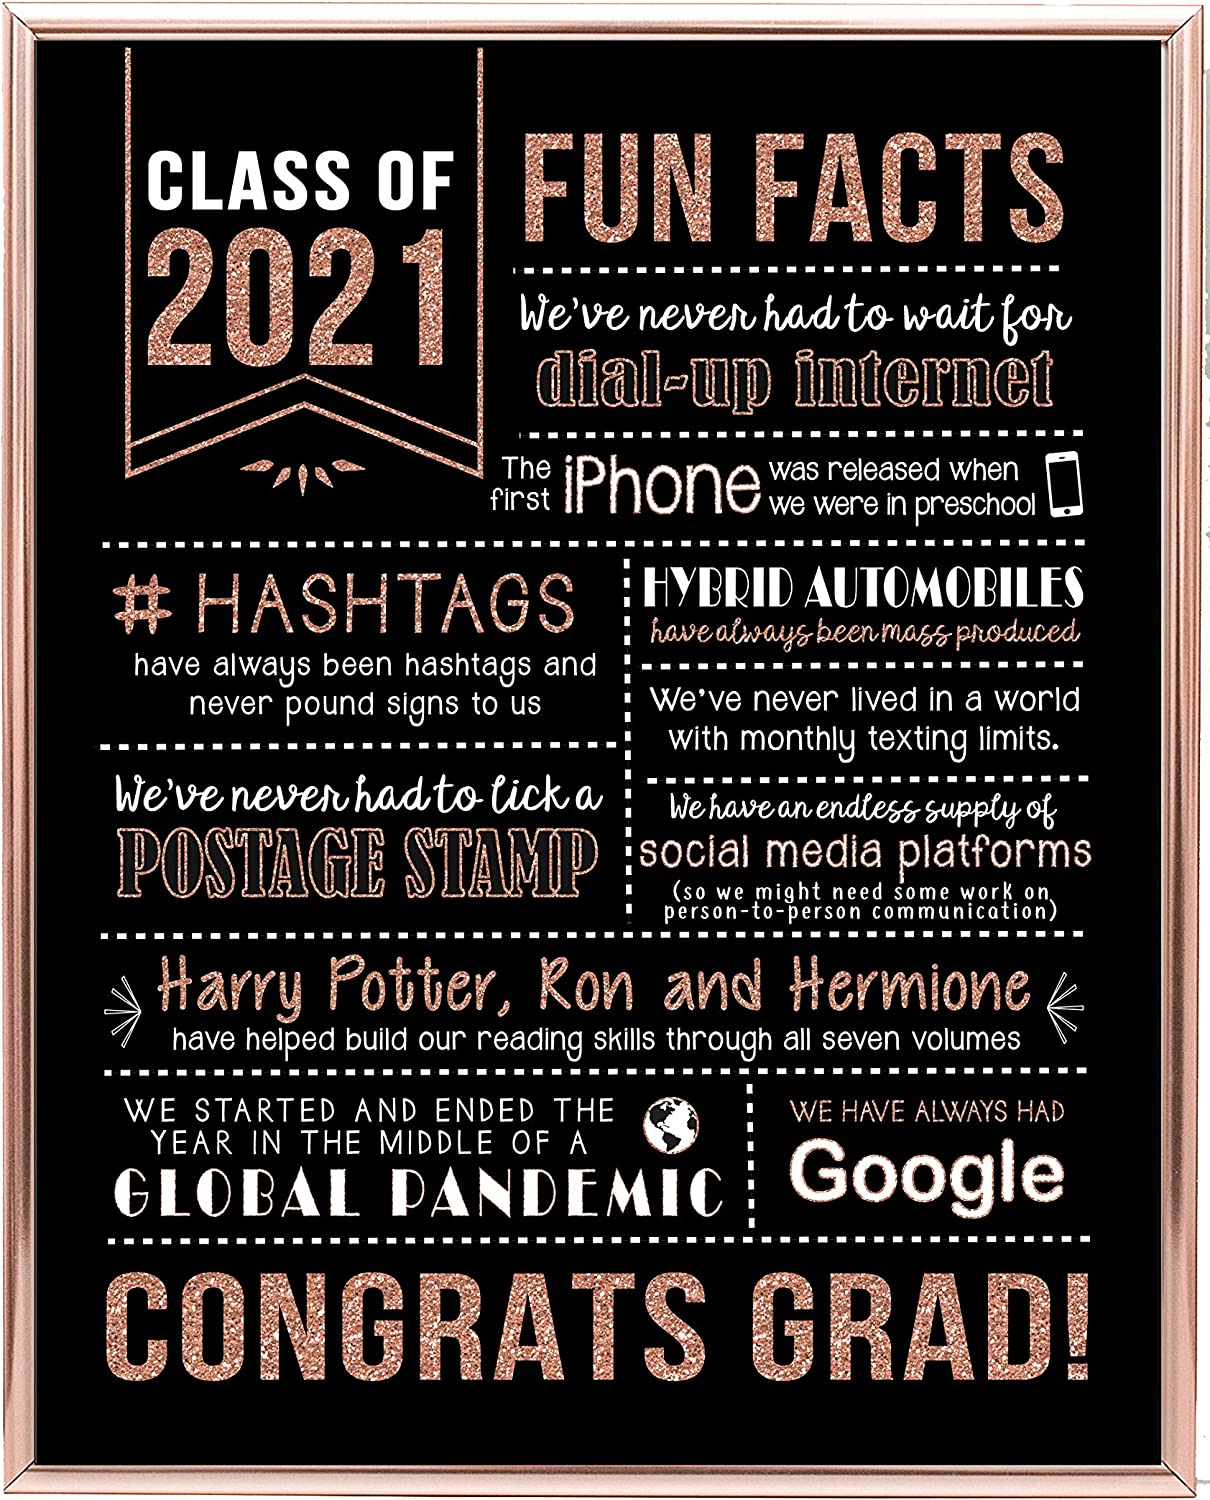 Katie Doodle Rose Gold Graduation Decorations 2021 - Fun Classy Table Decor - Great Class of 2021 Decorations or Graduation Gifts for Her - 2021 Funny Facts Print [Unframed], 8x10 inch, Rose Gold